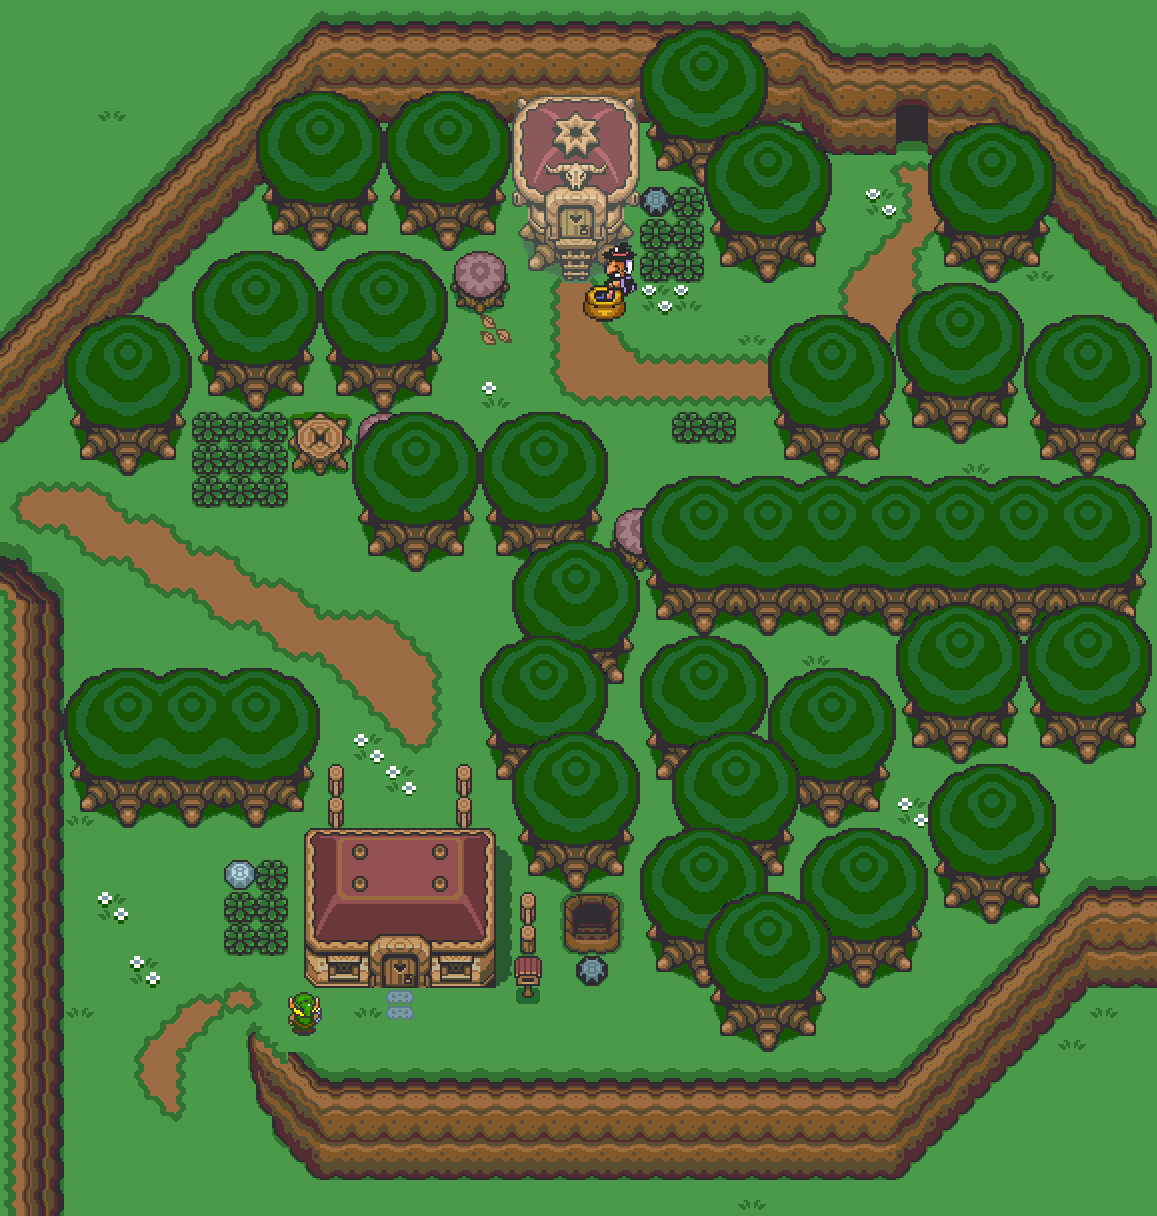 [Mapping] Concours Zelda - Page 2 Map_ze10